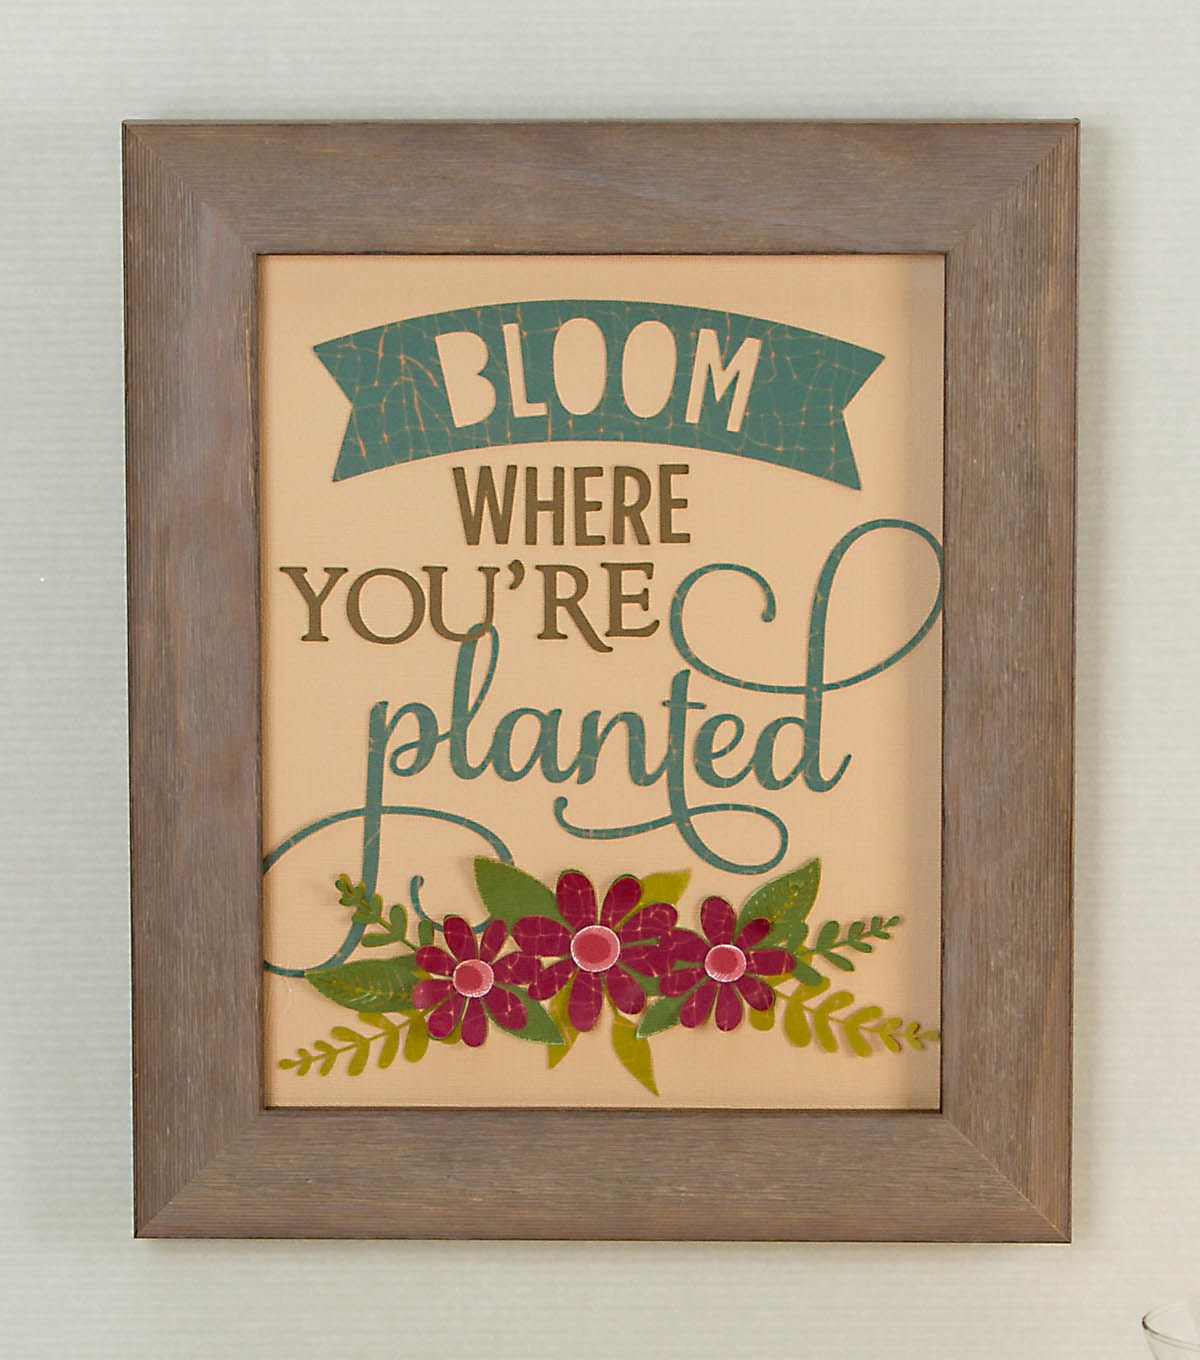 Bloom Where You Re Planted Home Decorations Garden Sign With Images Home Decor Bloom Where Youre Planted Bloom